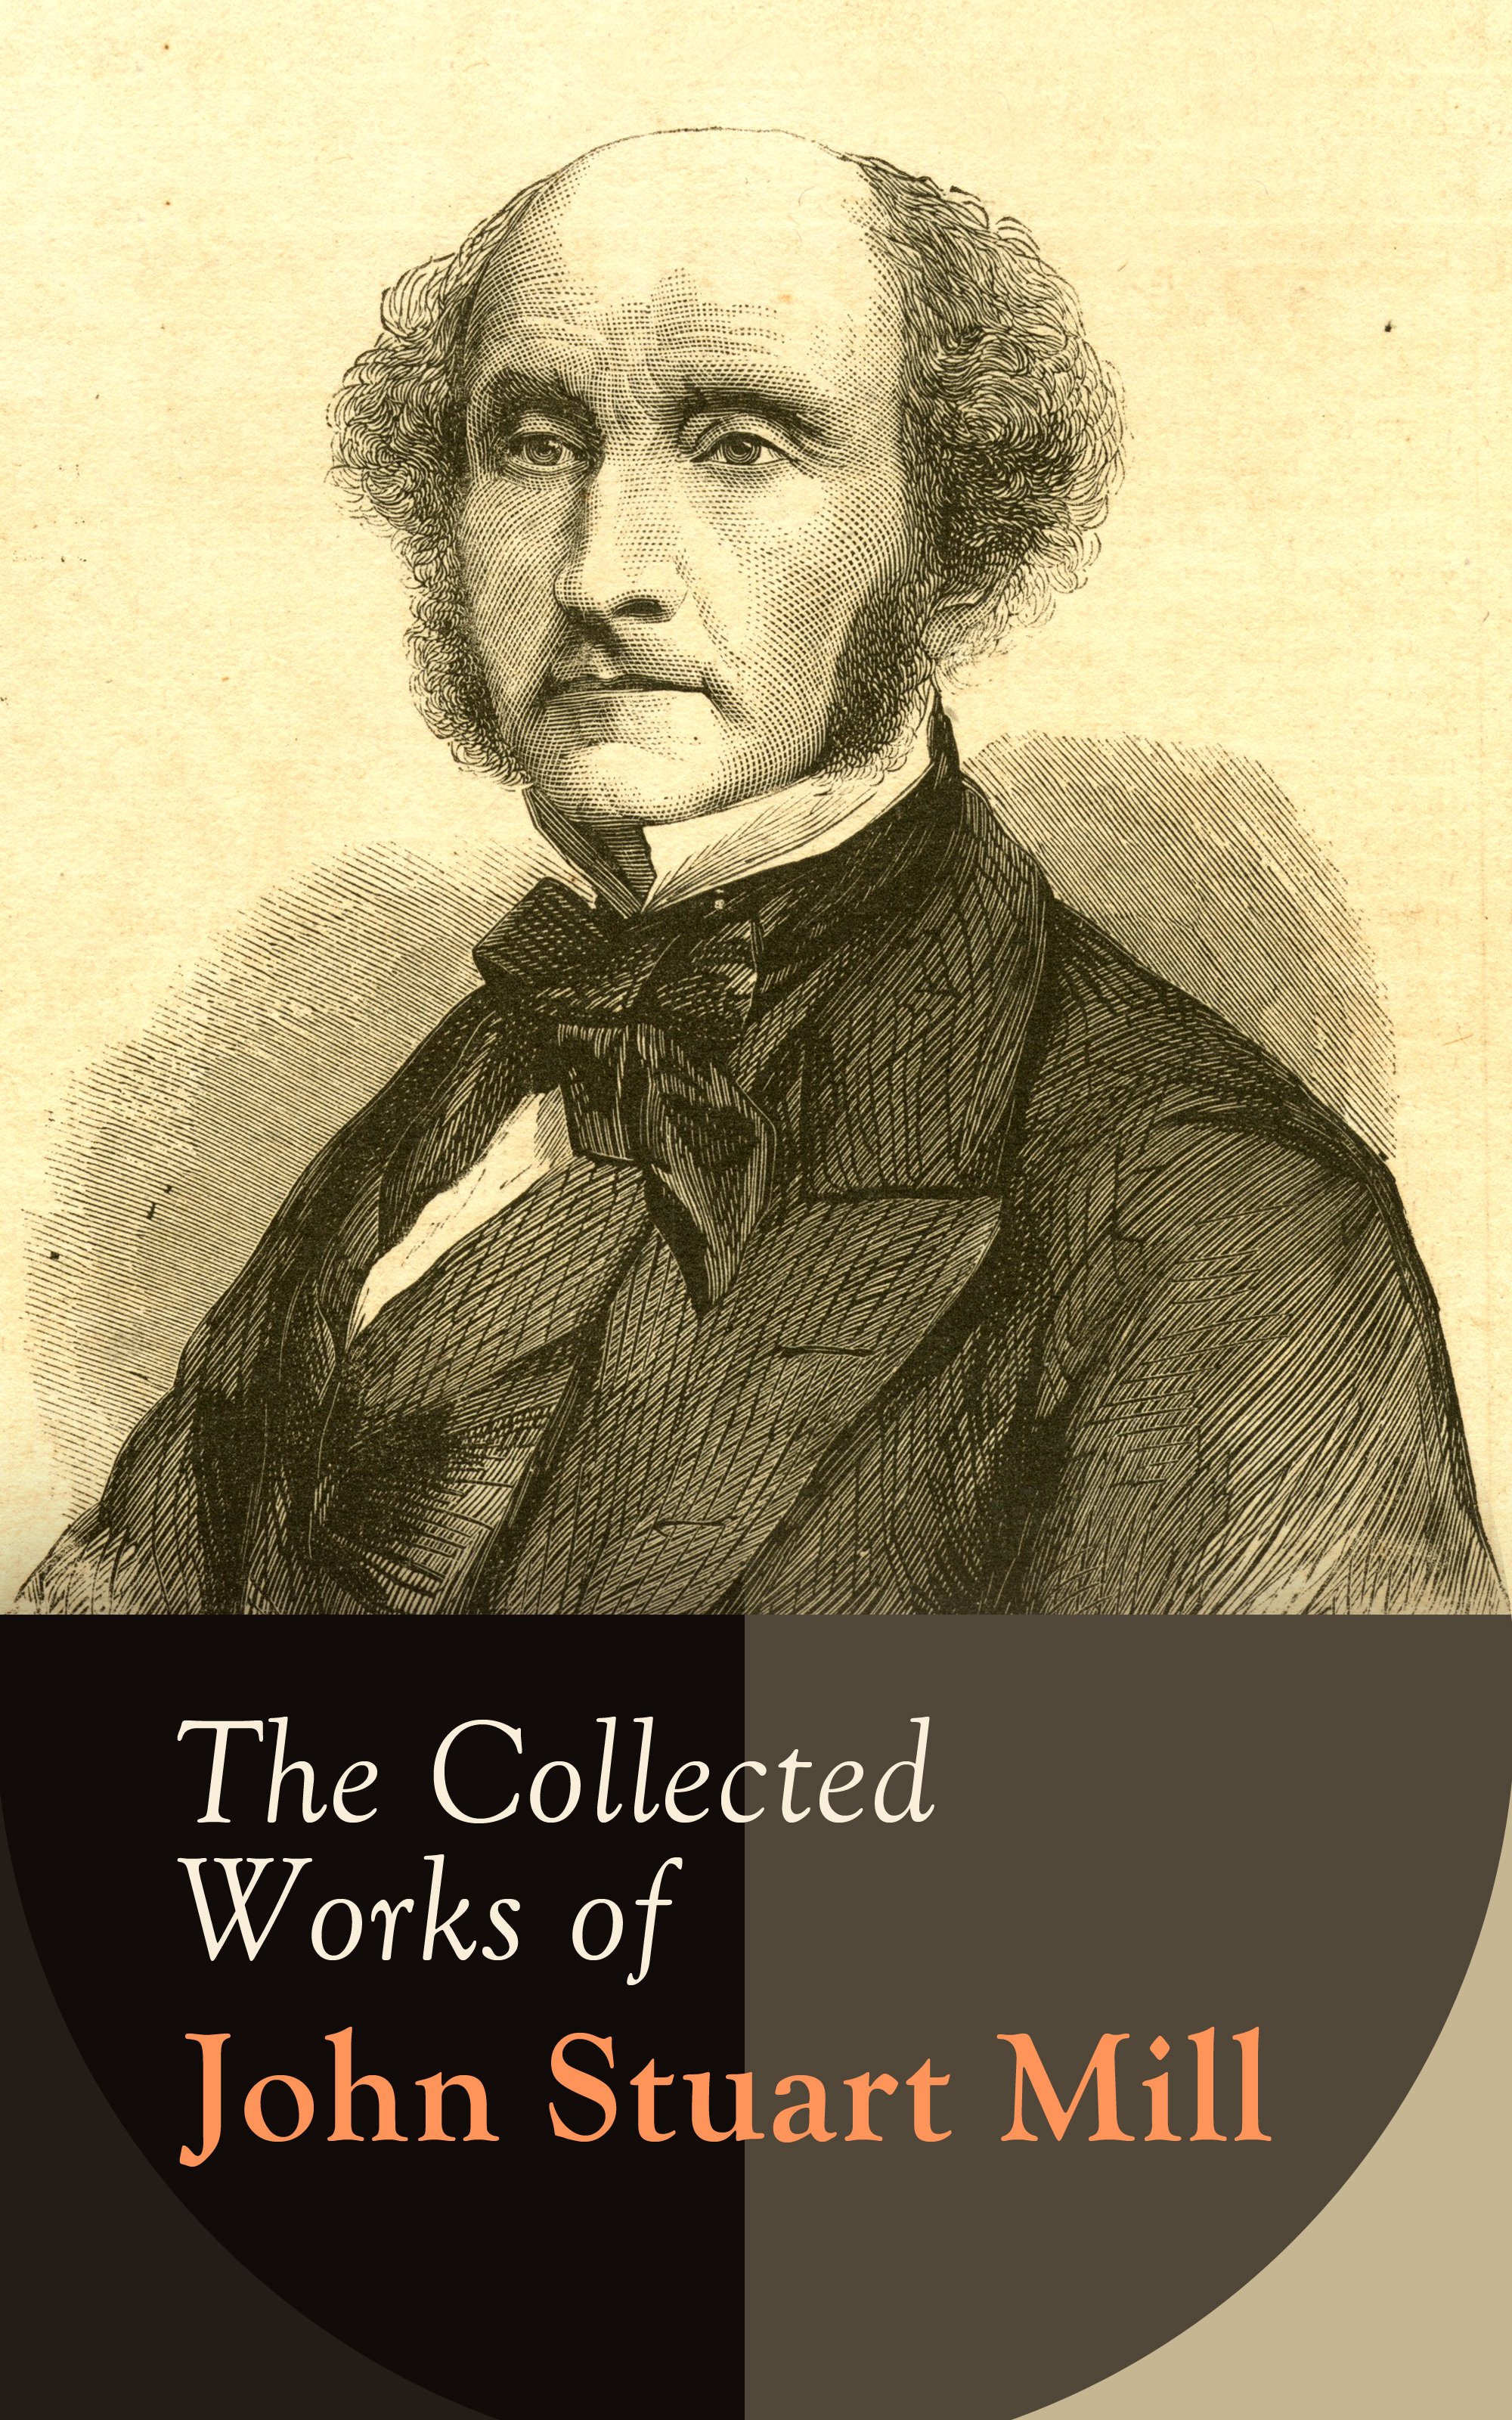 John Stuart Mill The Collected Works of John Stuart Mill john stuart mill lettres inedites de john stuart mill a auguste comte french edition